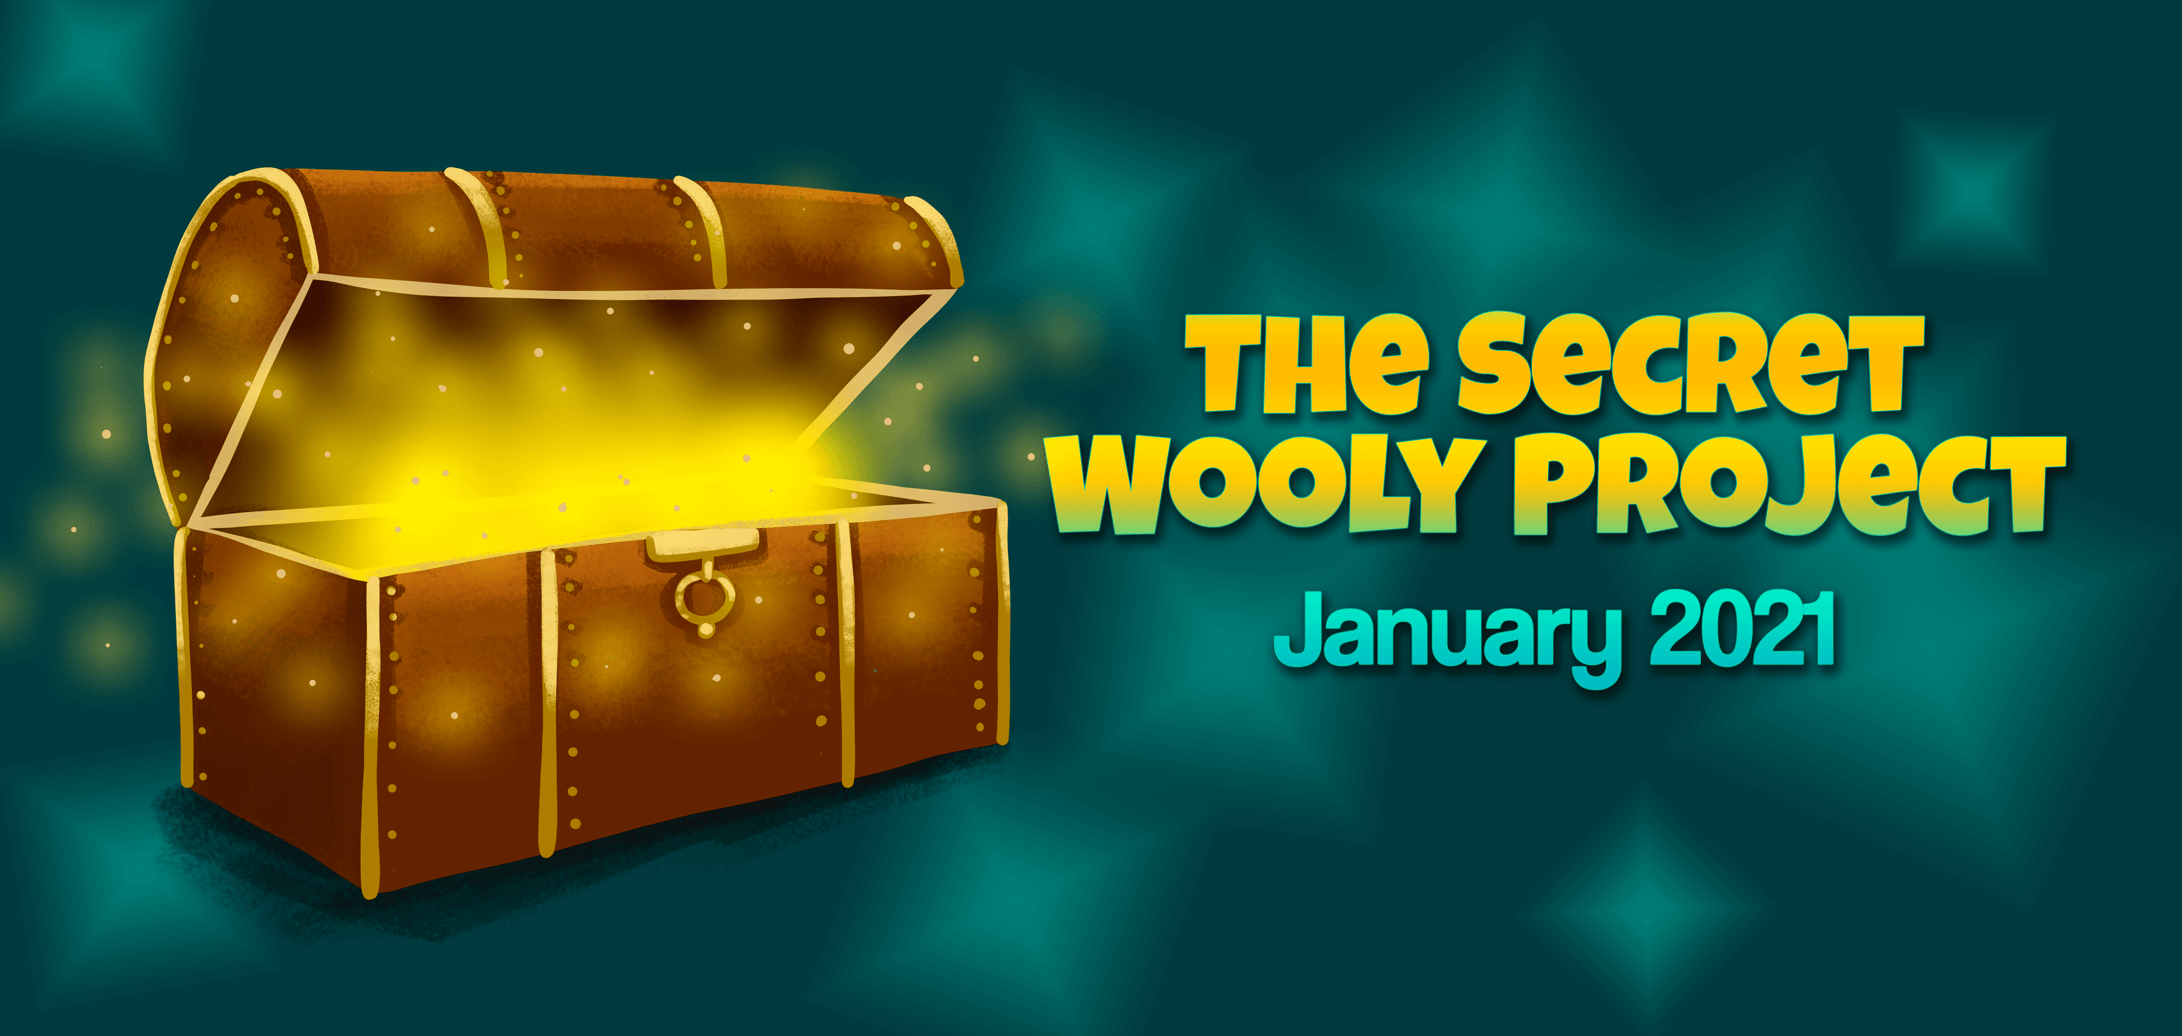 The Secret Wooly Project - January 2021